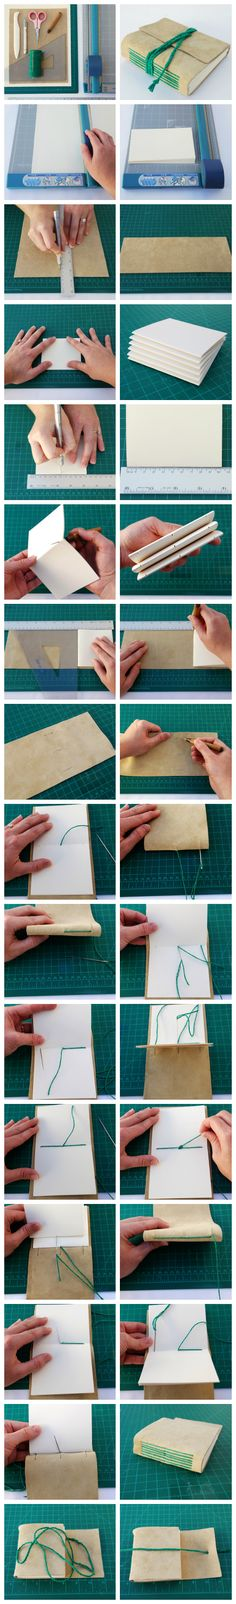 long-stitch tutorial by Erica Craft